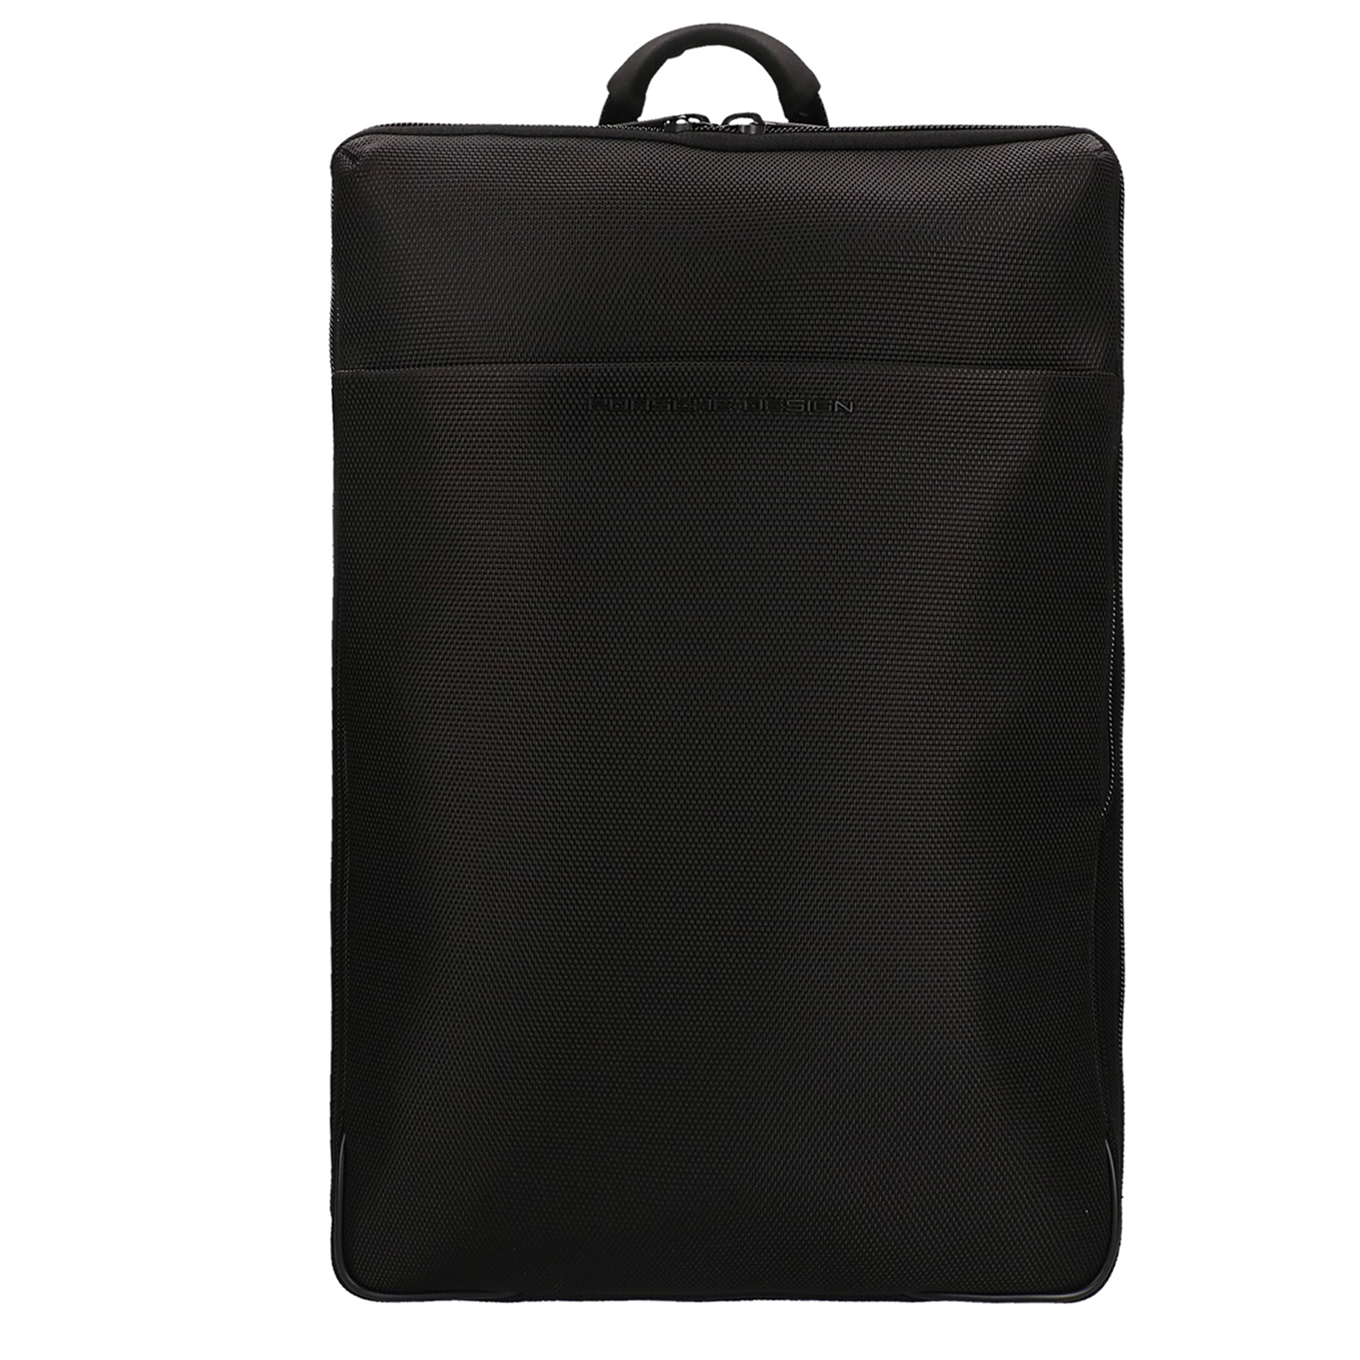 Porsche Design Roadster 4.1 Backpack XLVZ black Weekendtas <br/>€ 329.00 <br/> <a href='https://tc.tradetracker.net/?c=15082&m=779702&a=107398&u=http%3A%2F%2Fwww.travelbags.nl%3A80%2Fporsche-design-roadster-4-1-backpack-xlvz-black.html' target='_blank'>Bestellen</a>